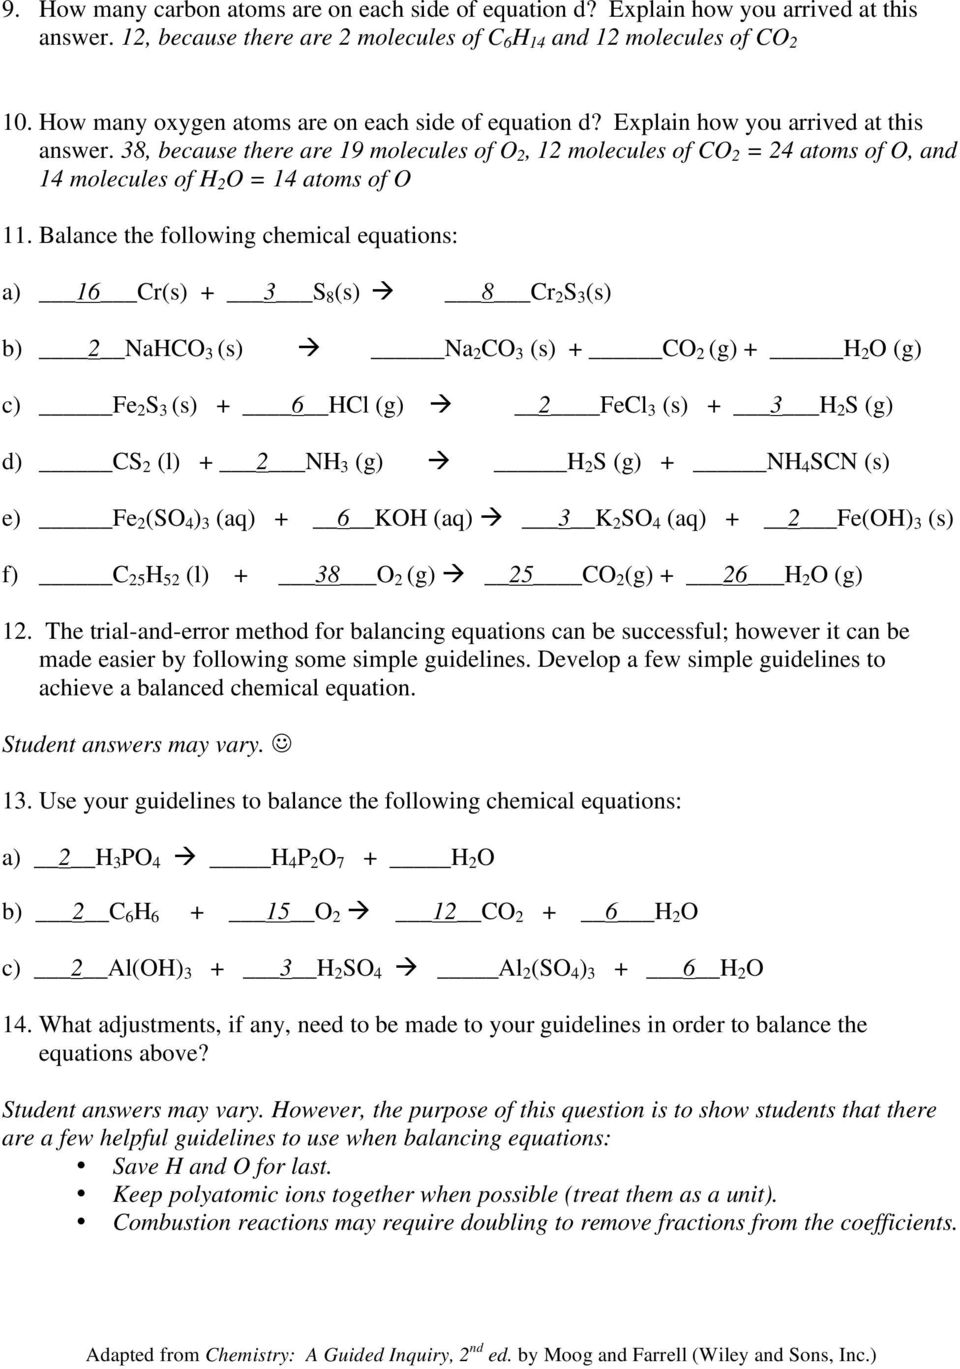 Balancing Chemical Equations Pdf